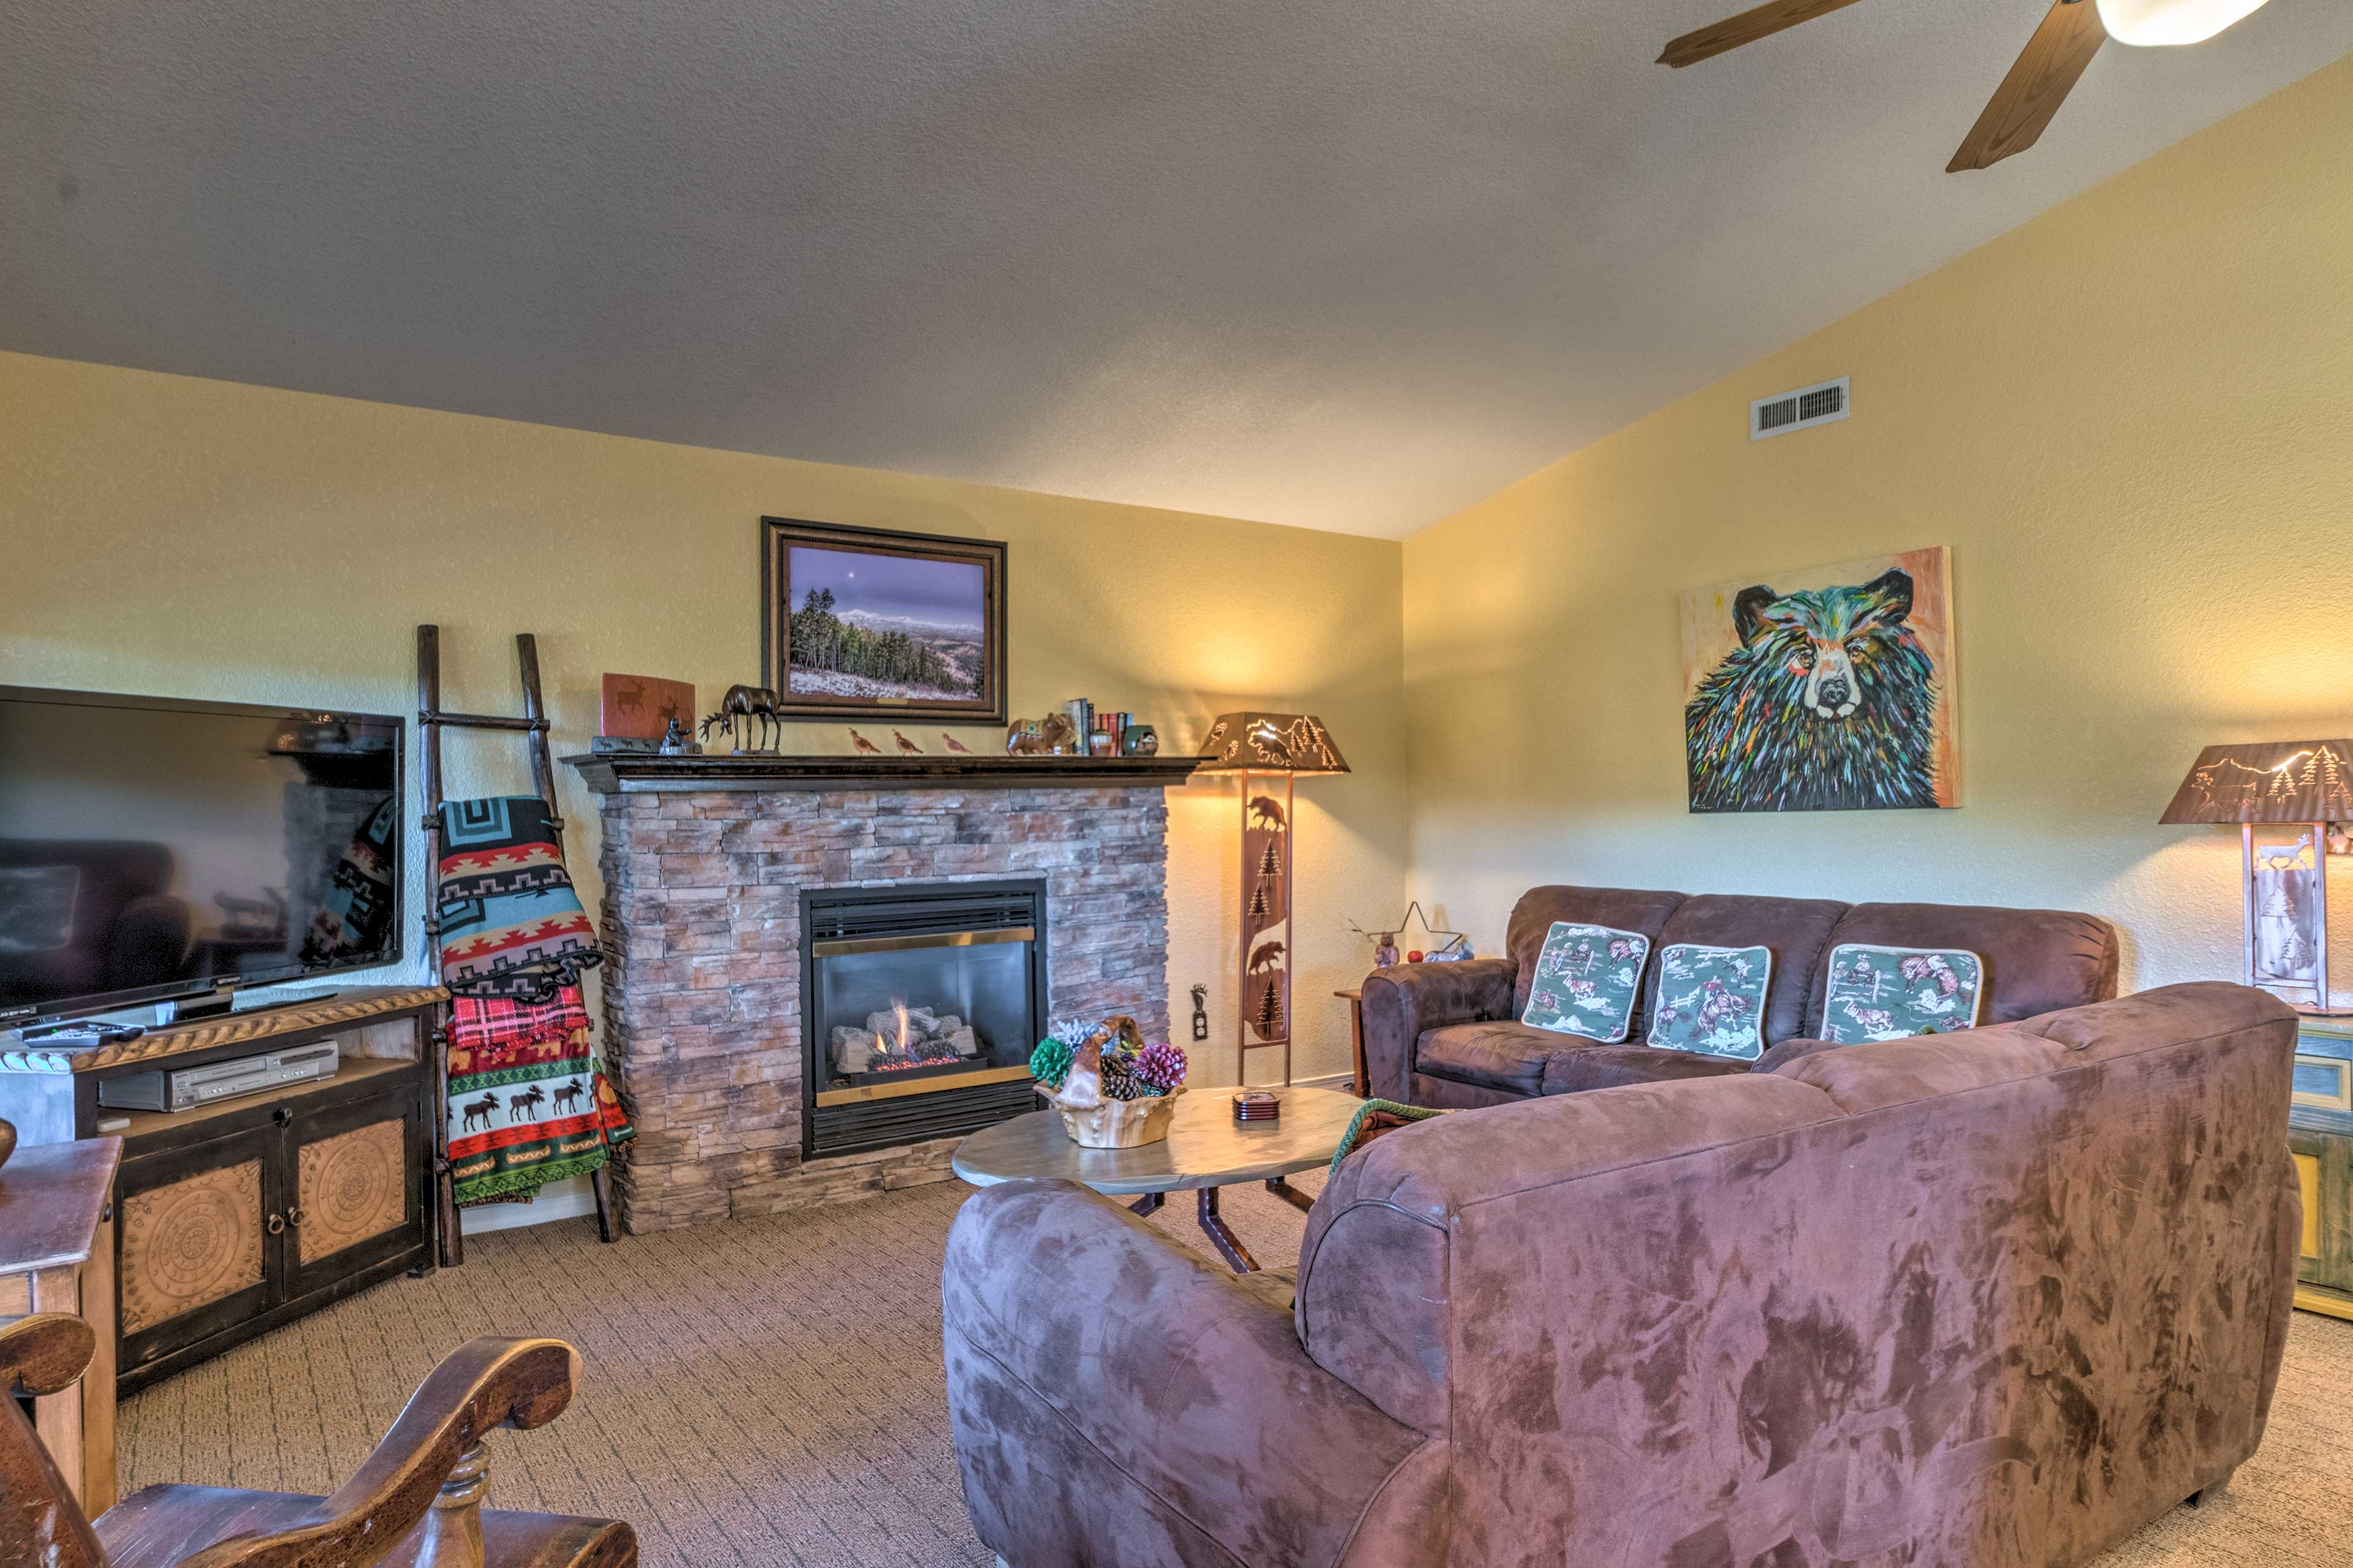 Kick back in front of the gas fireplace for a movie on the cable TV.